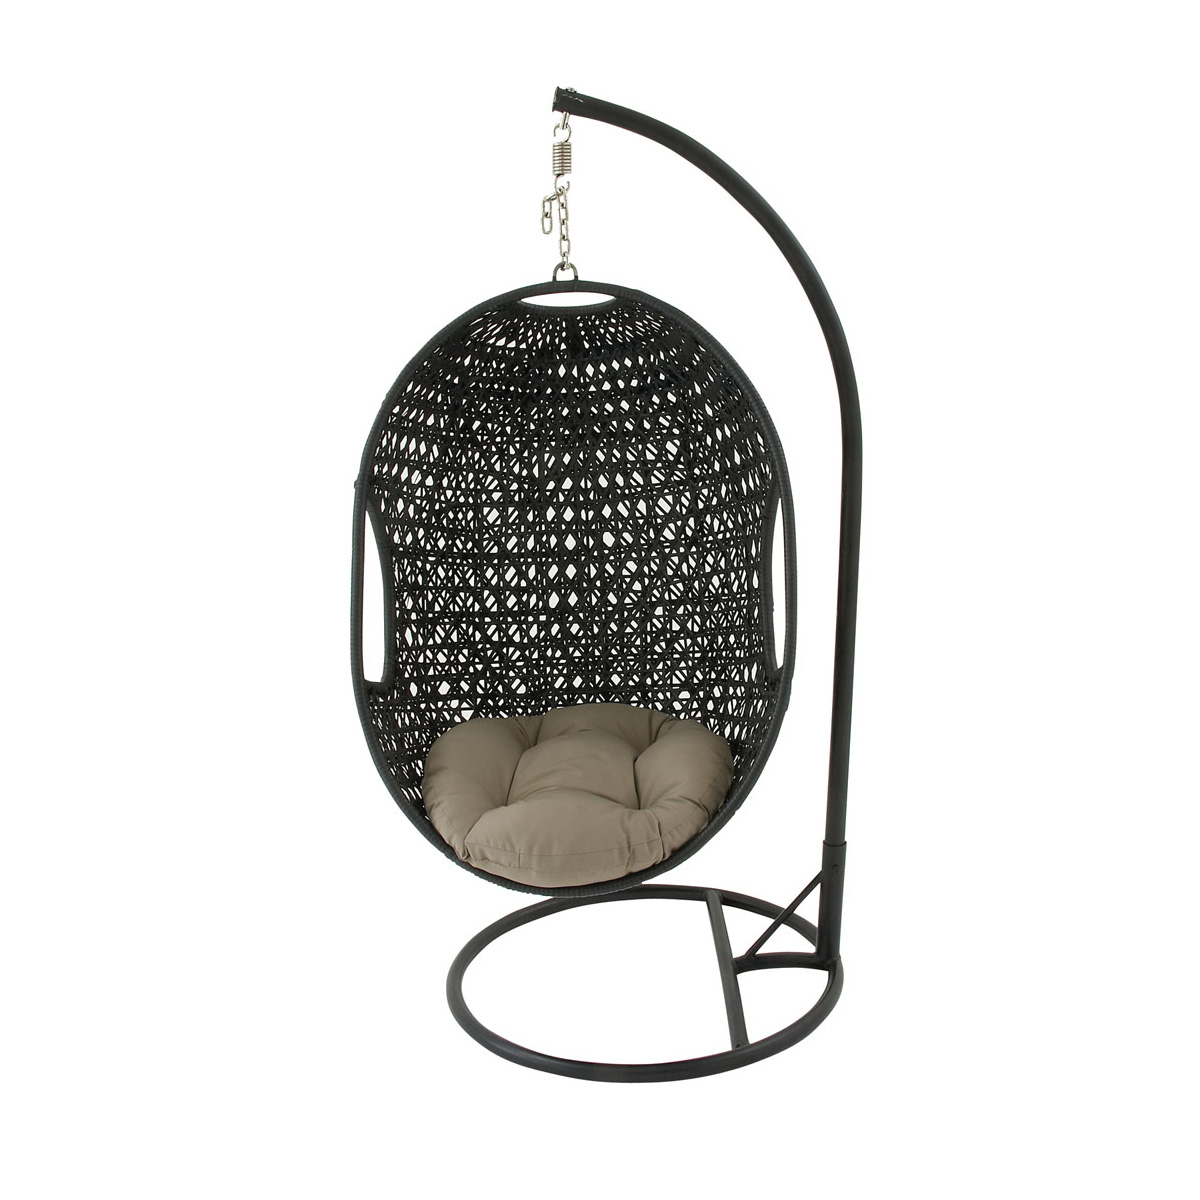 Wicker Hanging Egg Chair Hanover Outdoor Wicker Rattan Hanging Egg Chair Swing With